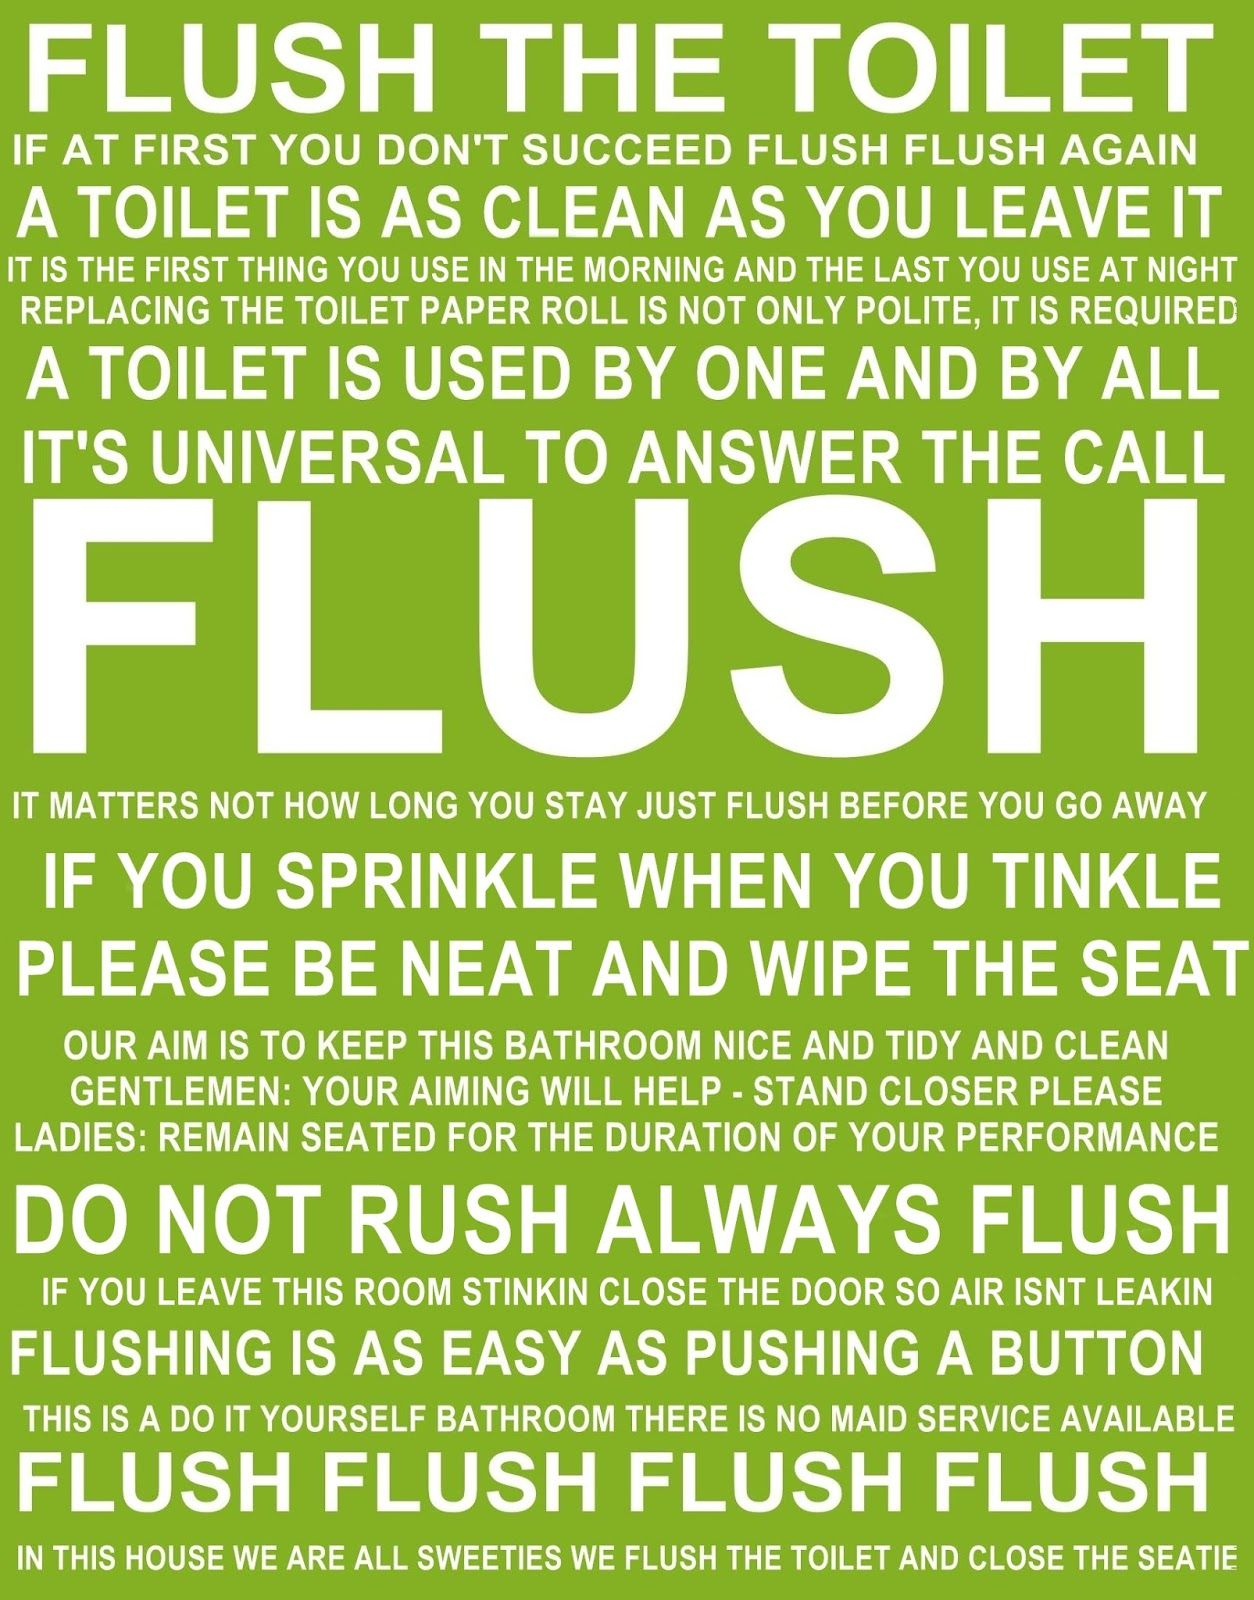 Flush The Toilet Quotes And Sayings Free Printable | Bathroom - Free Printable Flush The Toilet Signs